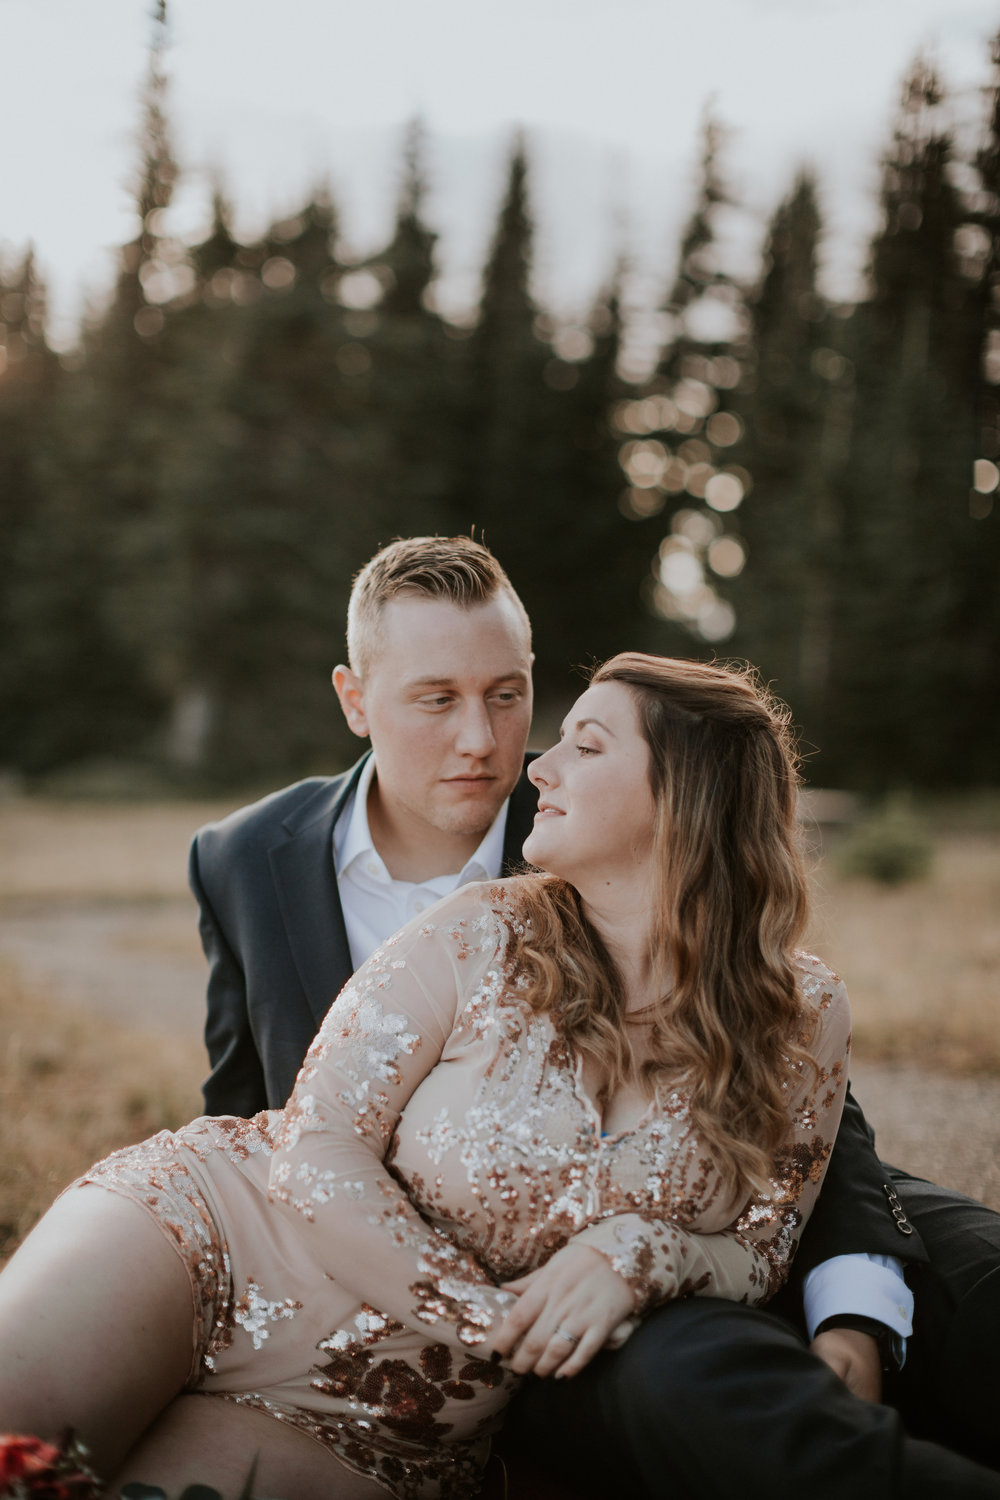 PNW-Hurricane-Ridge-Port-Angeles-Washington-elopement-photographer-kayla-dawn-photography-kayladawnphoto-wedding-anniversary-photoshoot-olympic-peninsula-263.jpg